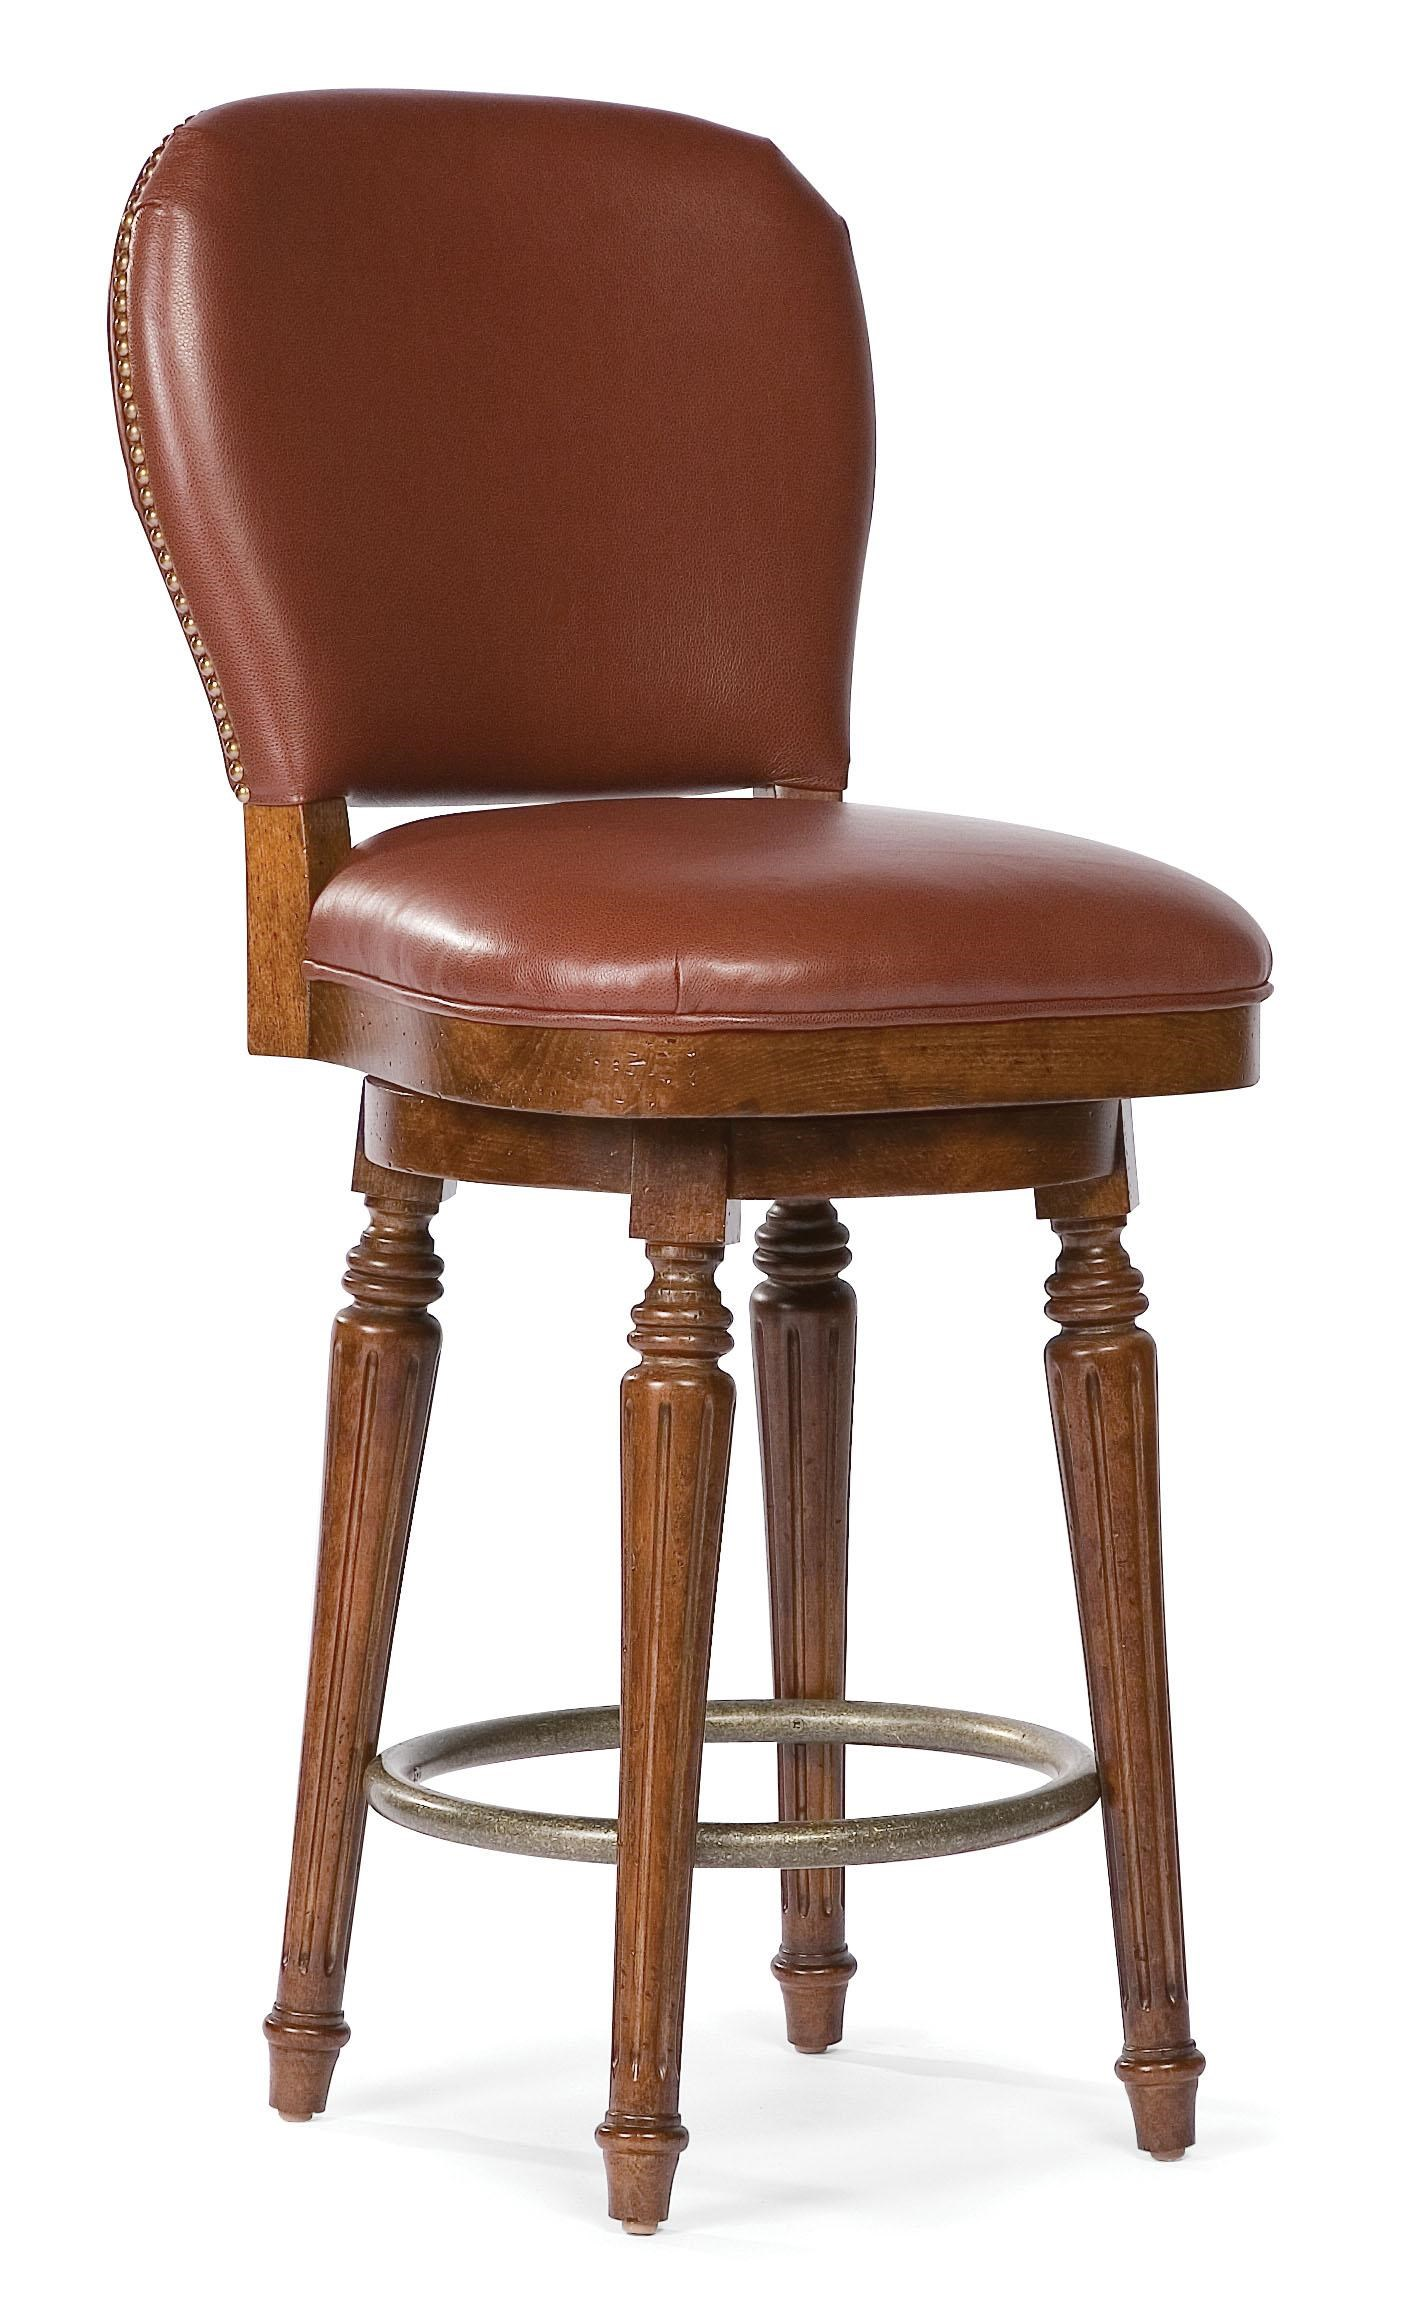 Fairfield Barstools Leather Counter Stool with Nailhead  : barstools5045 c7 bjpgscalebothampwidth500ampheight500ampfsharpen25ampdown from www.designinteriorsfurniture.com size 500 x 500 jpeg 24kB